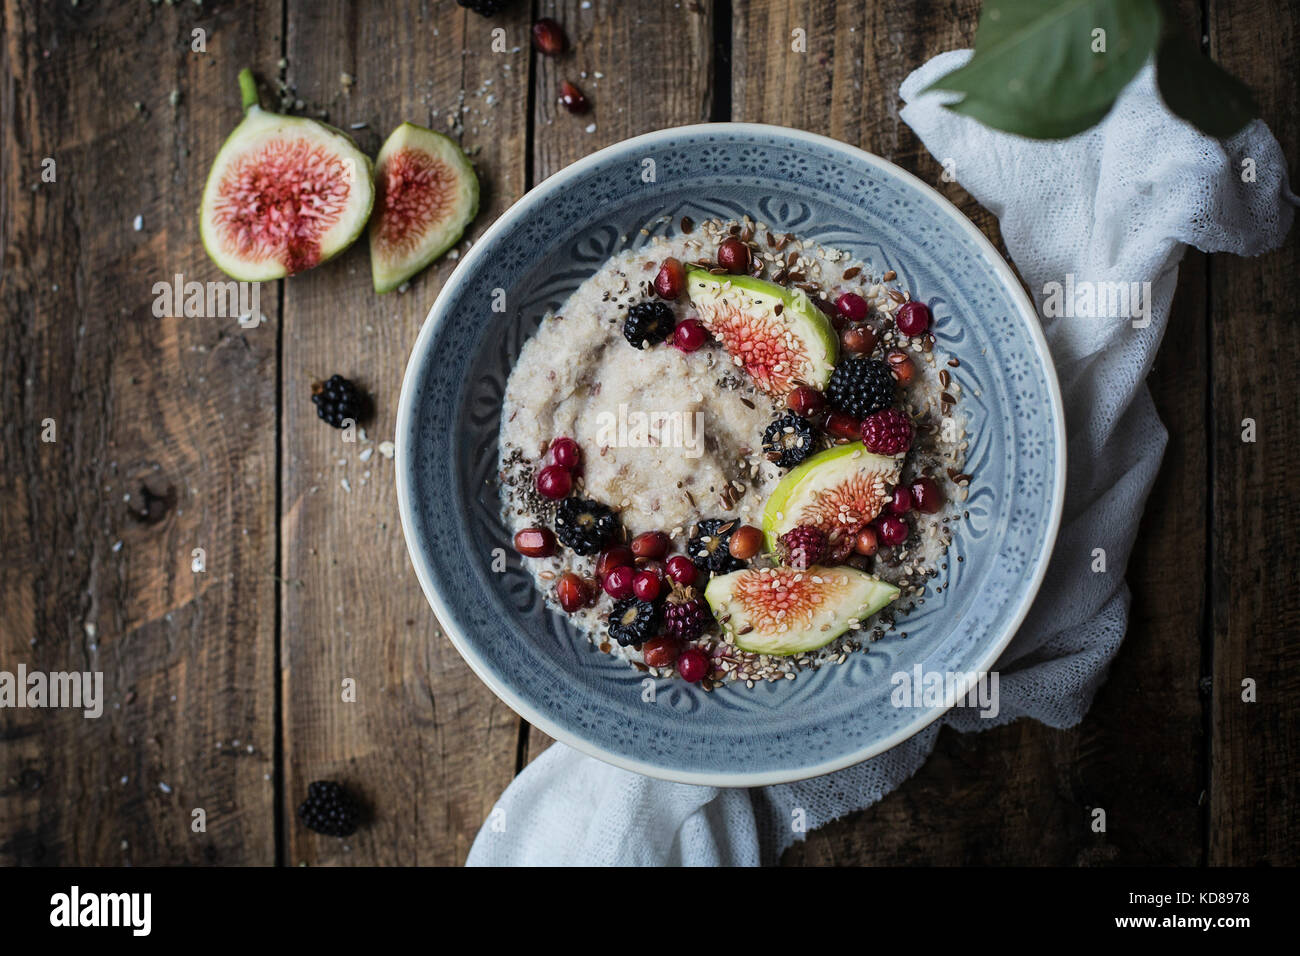 Breakfast: oatmeal pudding with fresh fruit on wooden table - Stock Image